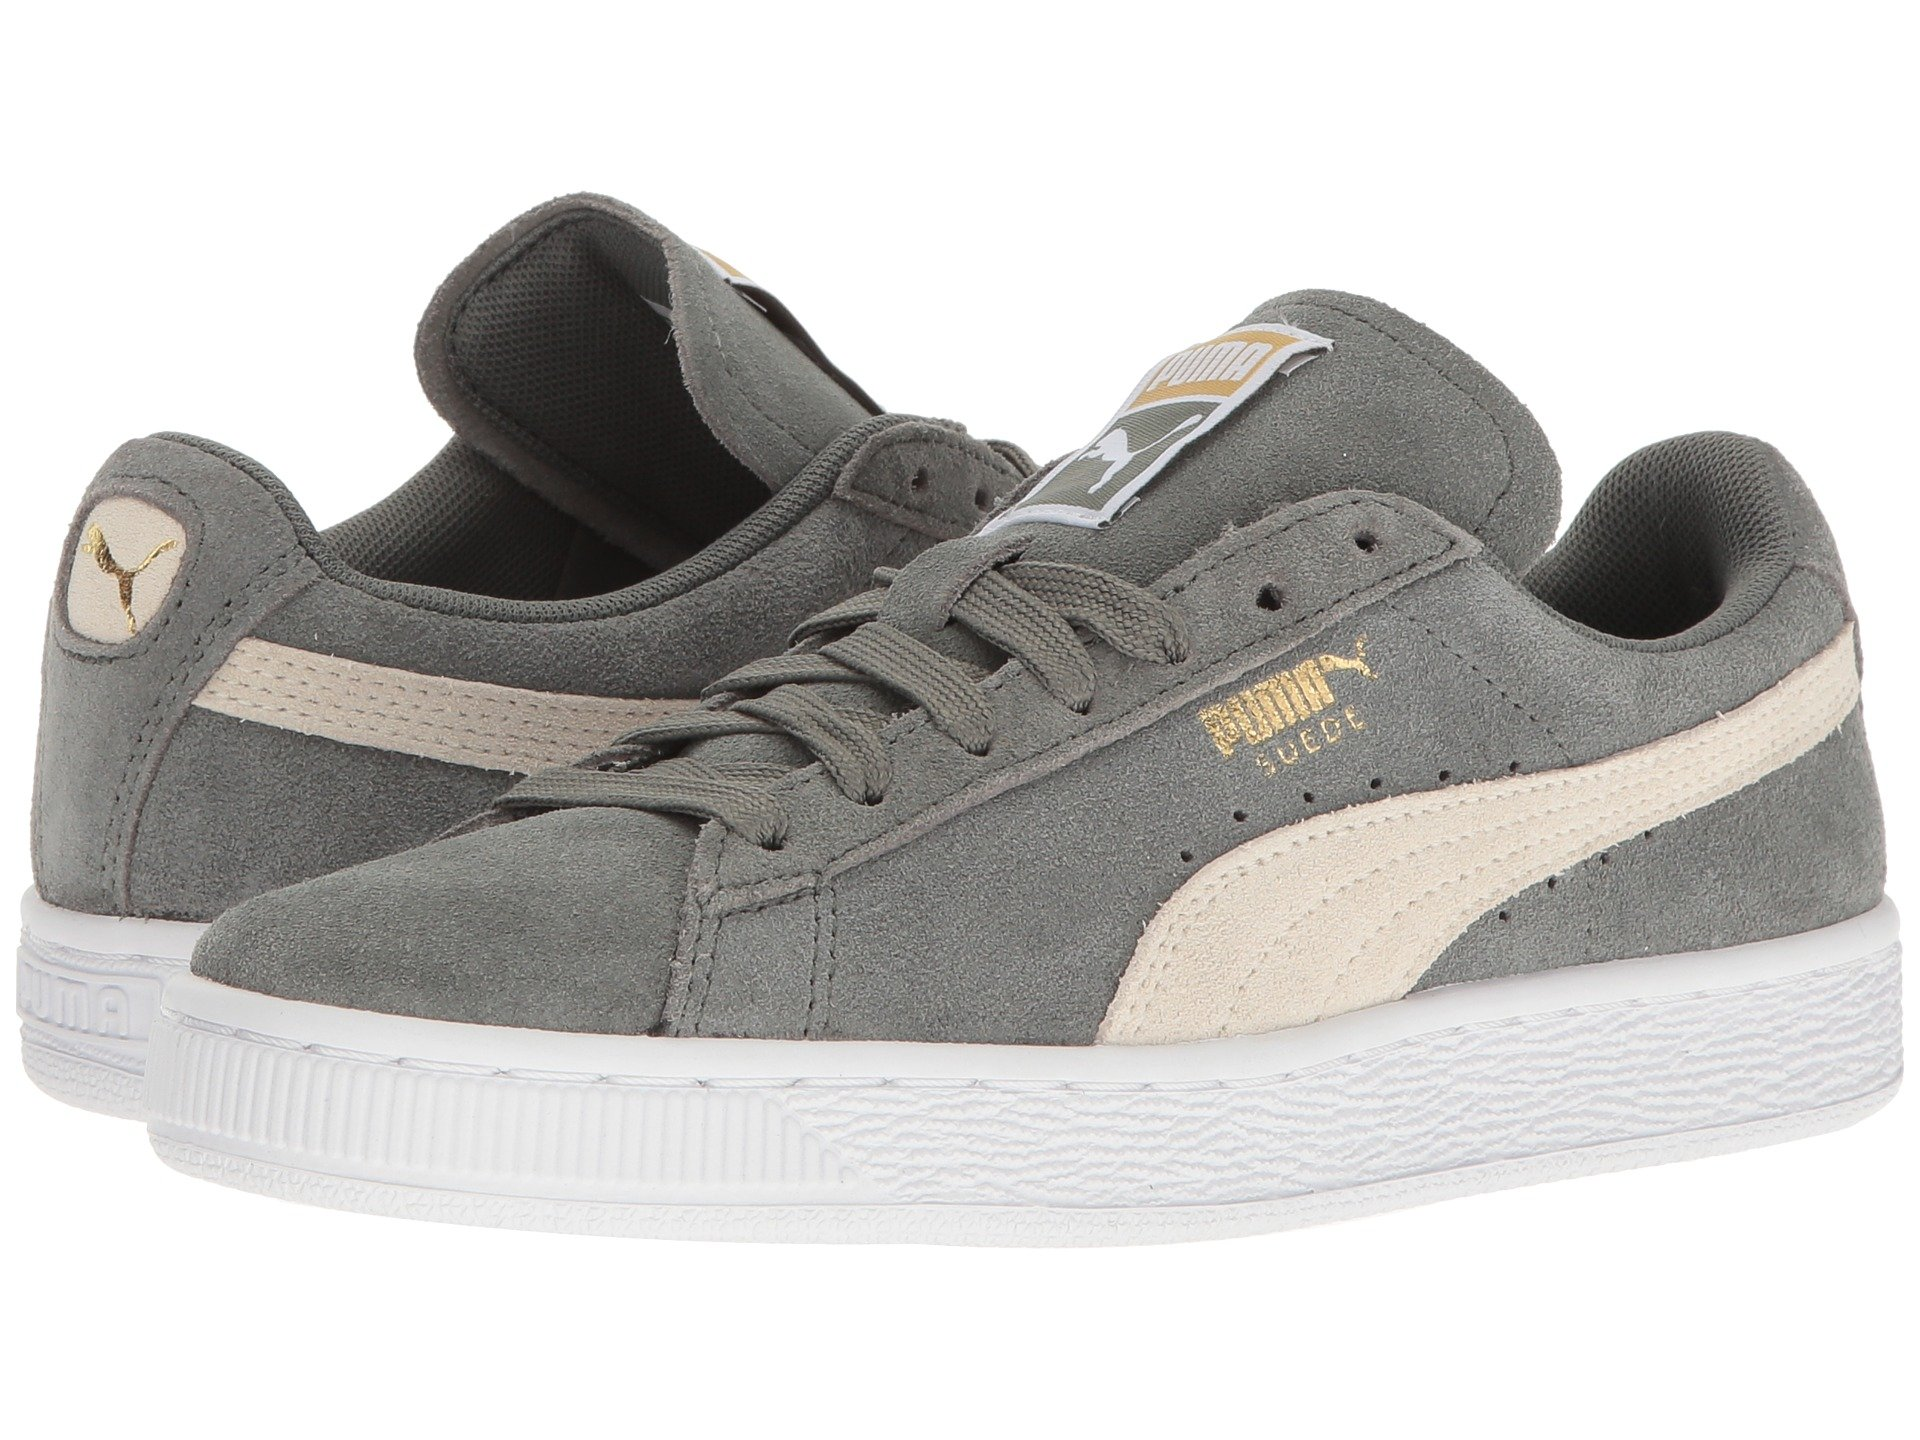 Color Puma Natural Vachetta Whisper White